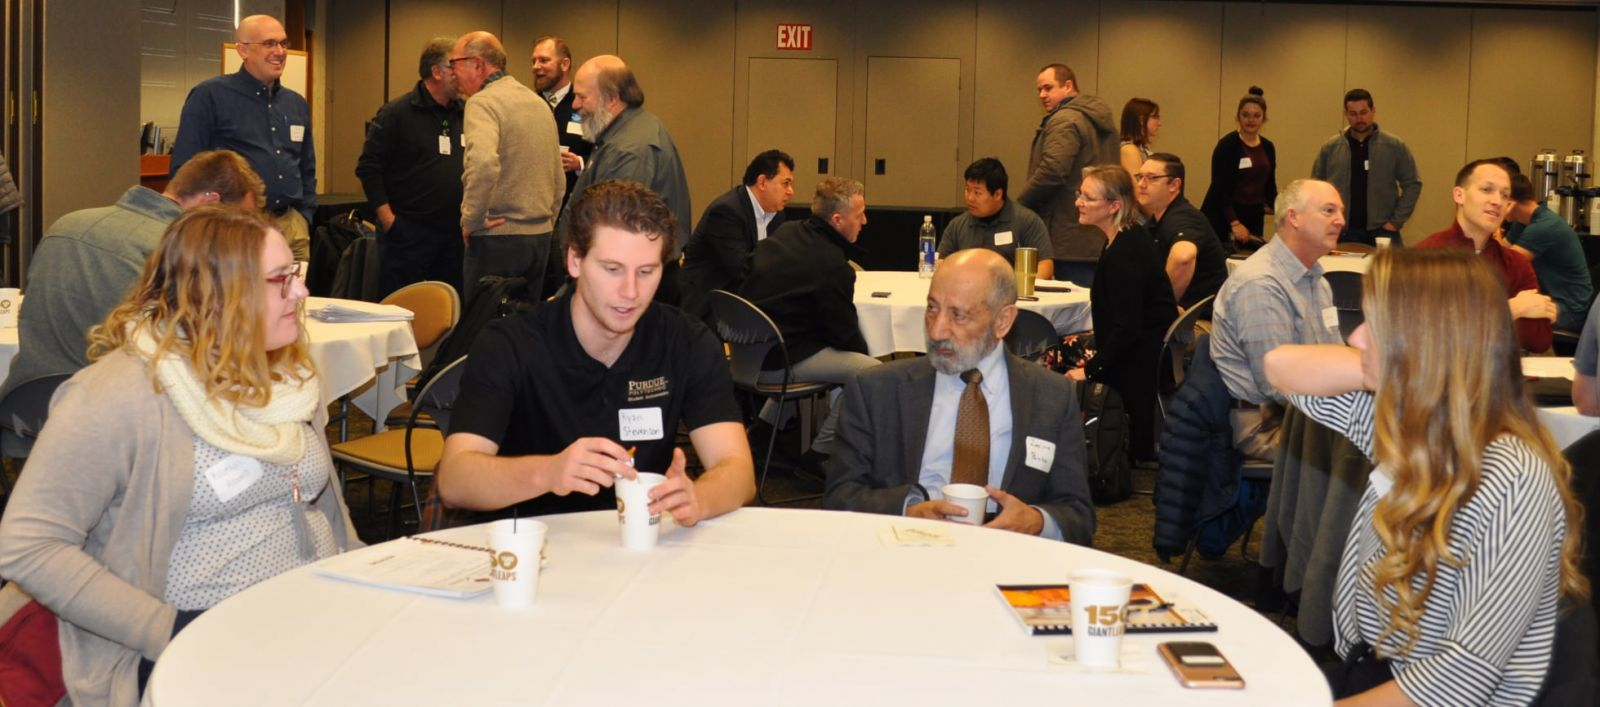 Students, faculty and industry representatives networking at the ISHE/ASHE conference